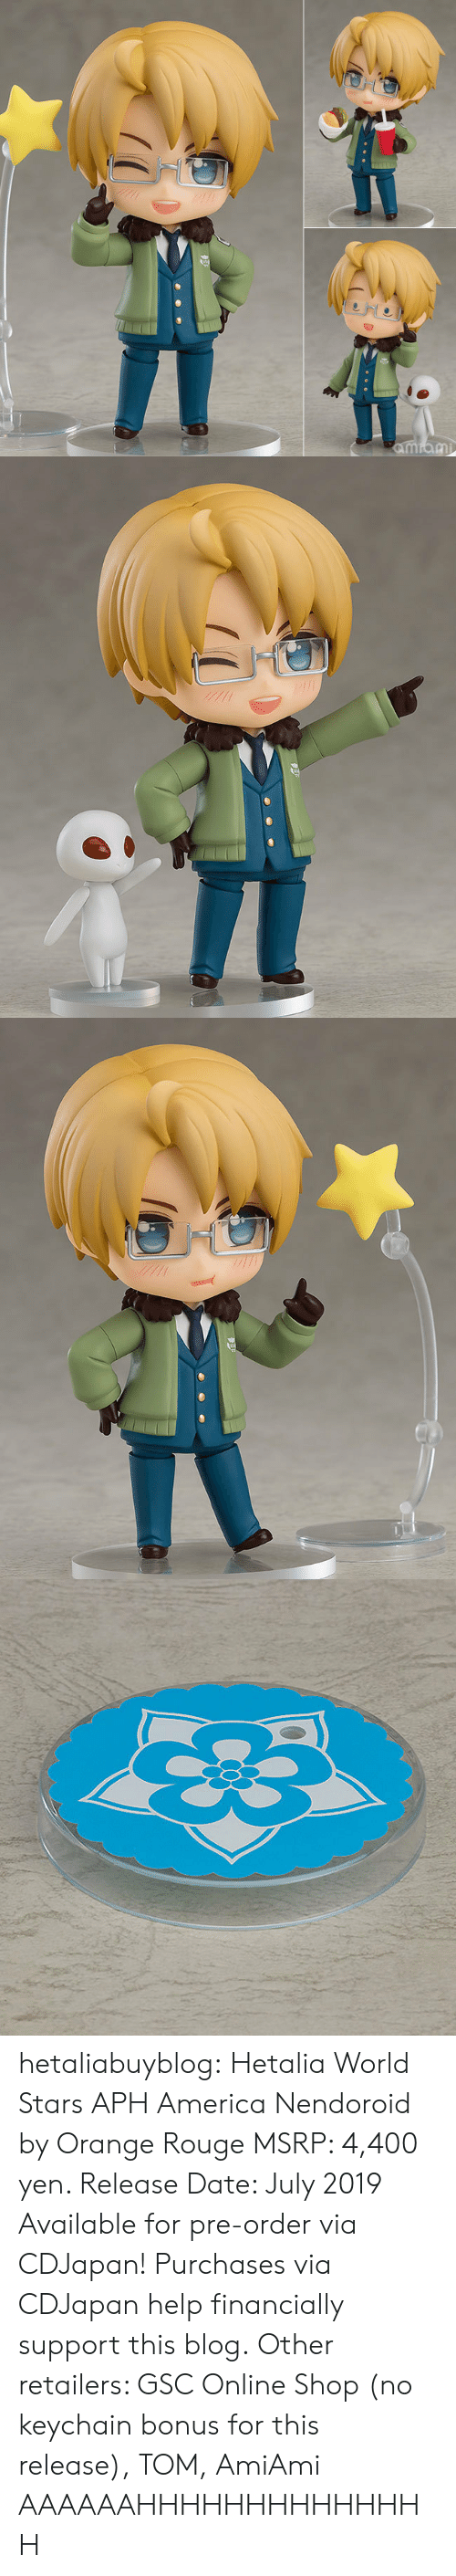 rouge: 0  8 hetaliabuyblog: Hetalia World Stars APH America Nendoroid by Orange Rouge MSRP: 4,400 yen. Release Date: July 2019 Available for pre-order via CDJapan! Purchases via CDJapan help financially support this blog. Other retailers: GSC Online Shop (no keychain bonus for this release), TOM, AmiAmi   AAAAAAHHHHHHHHHHHHHH